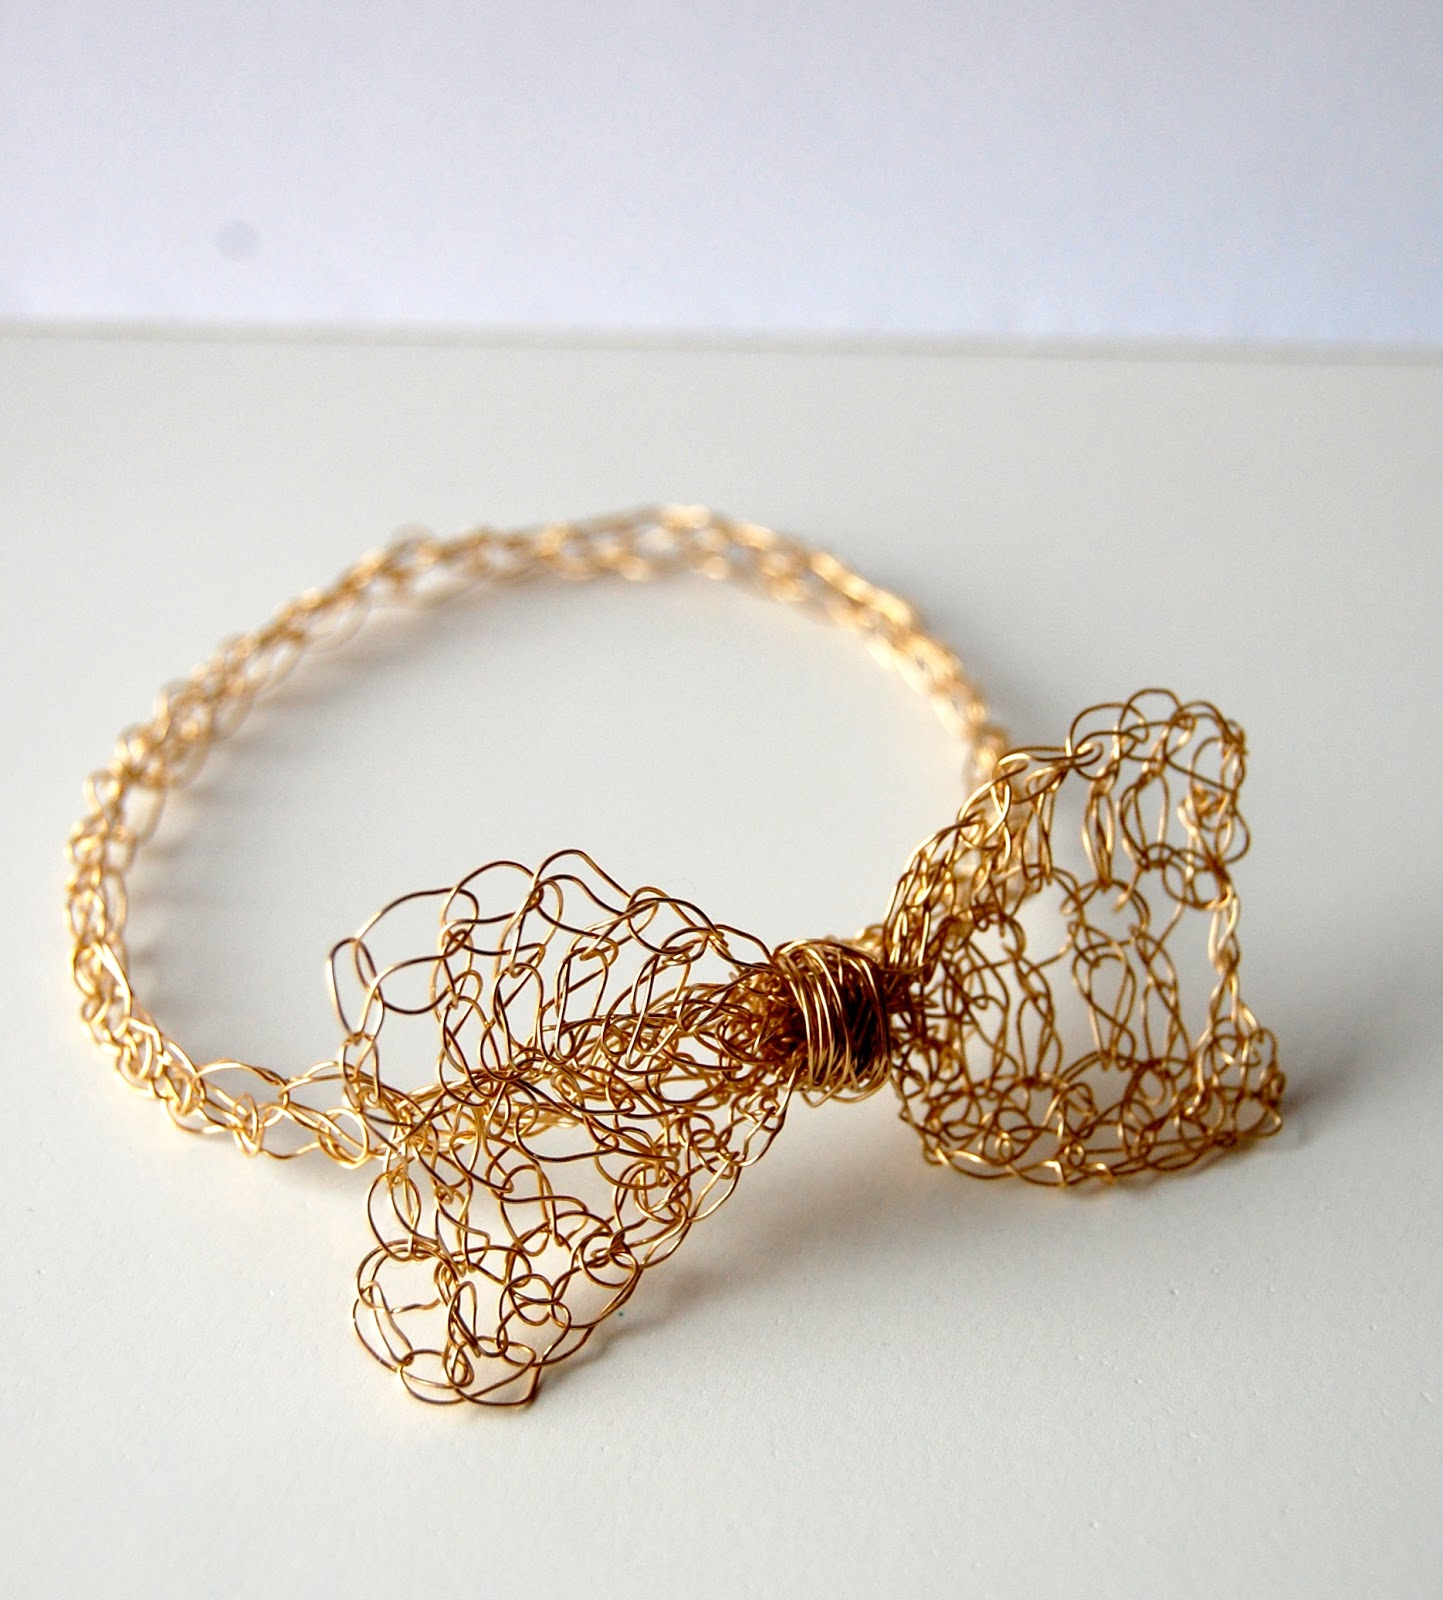 Crocheting Bracelets : SellzCuteThings: Easy Gold Crochet Bow Bracelet